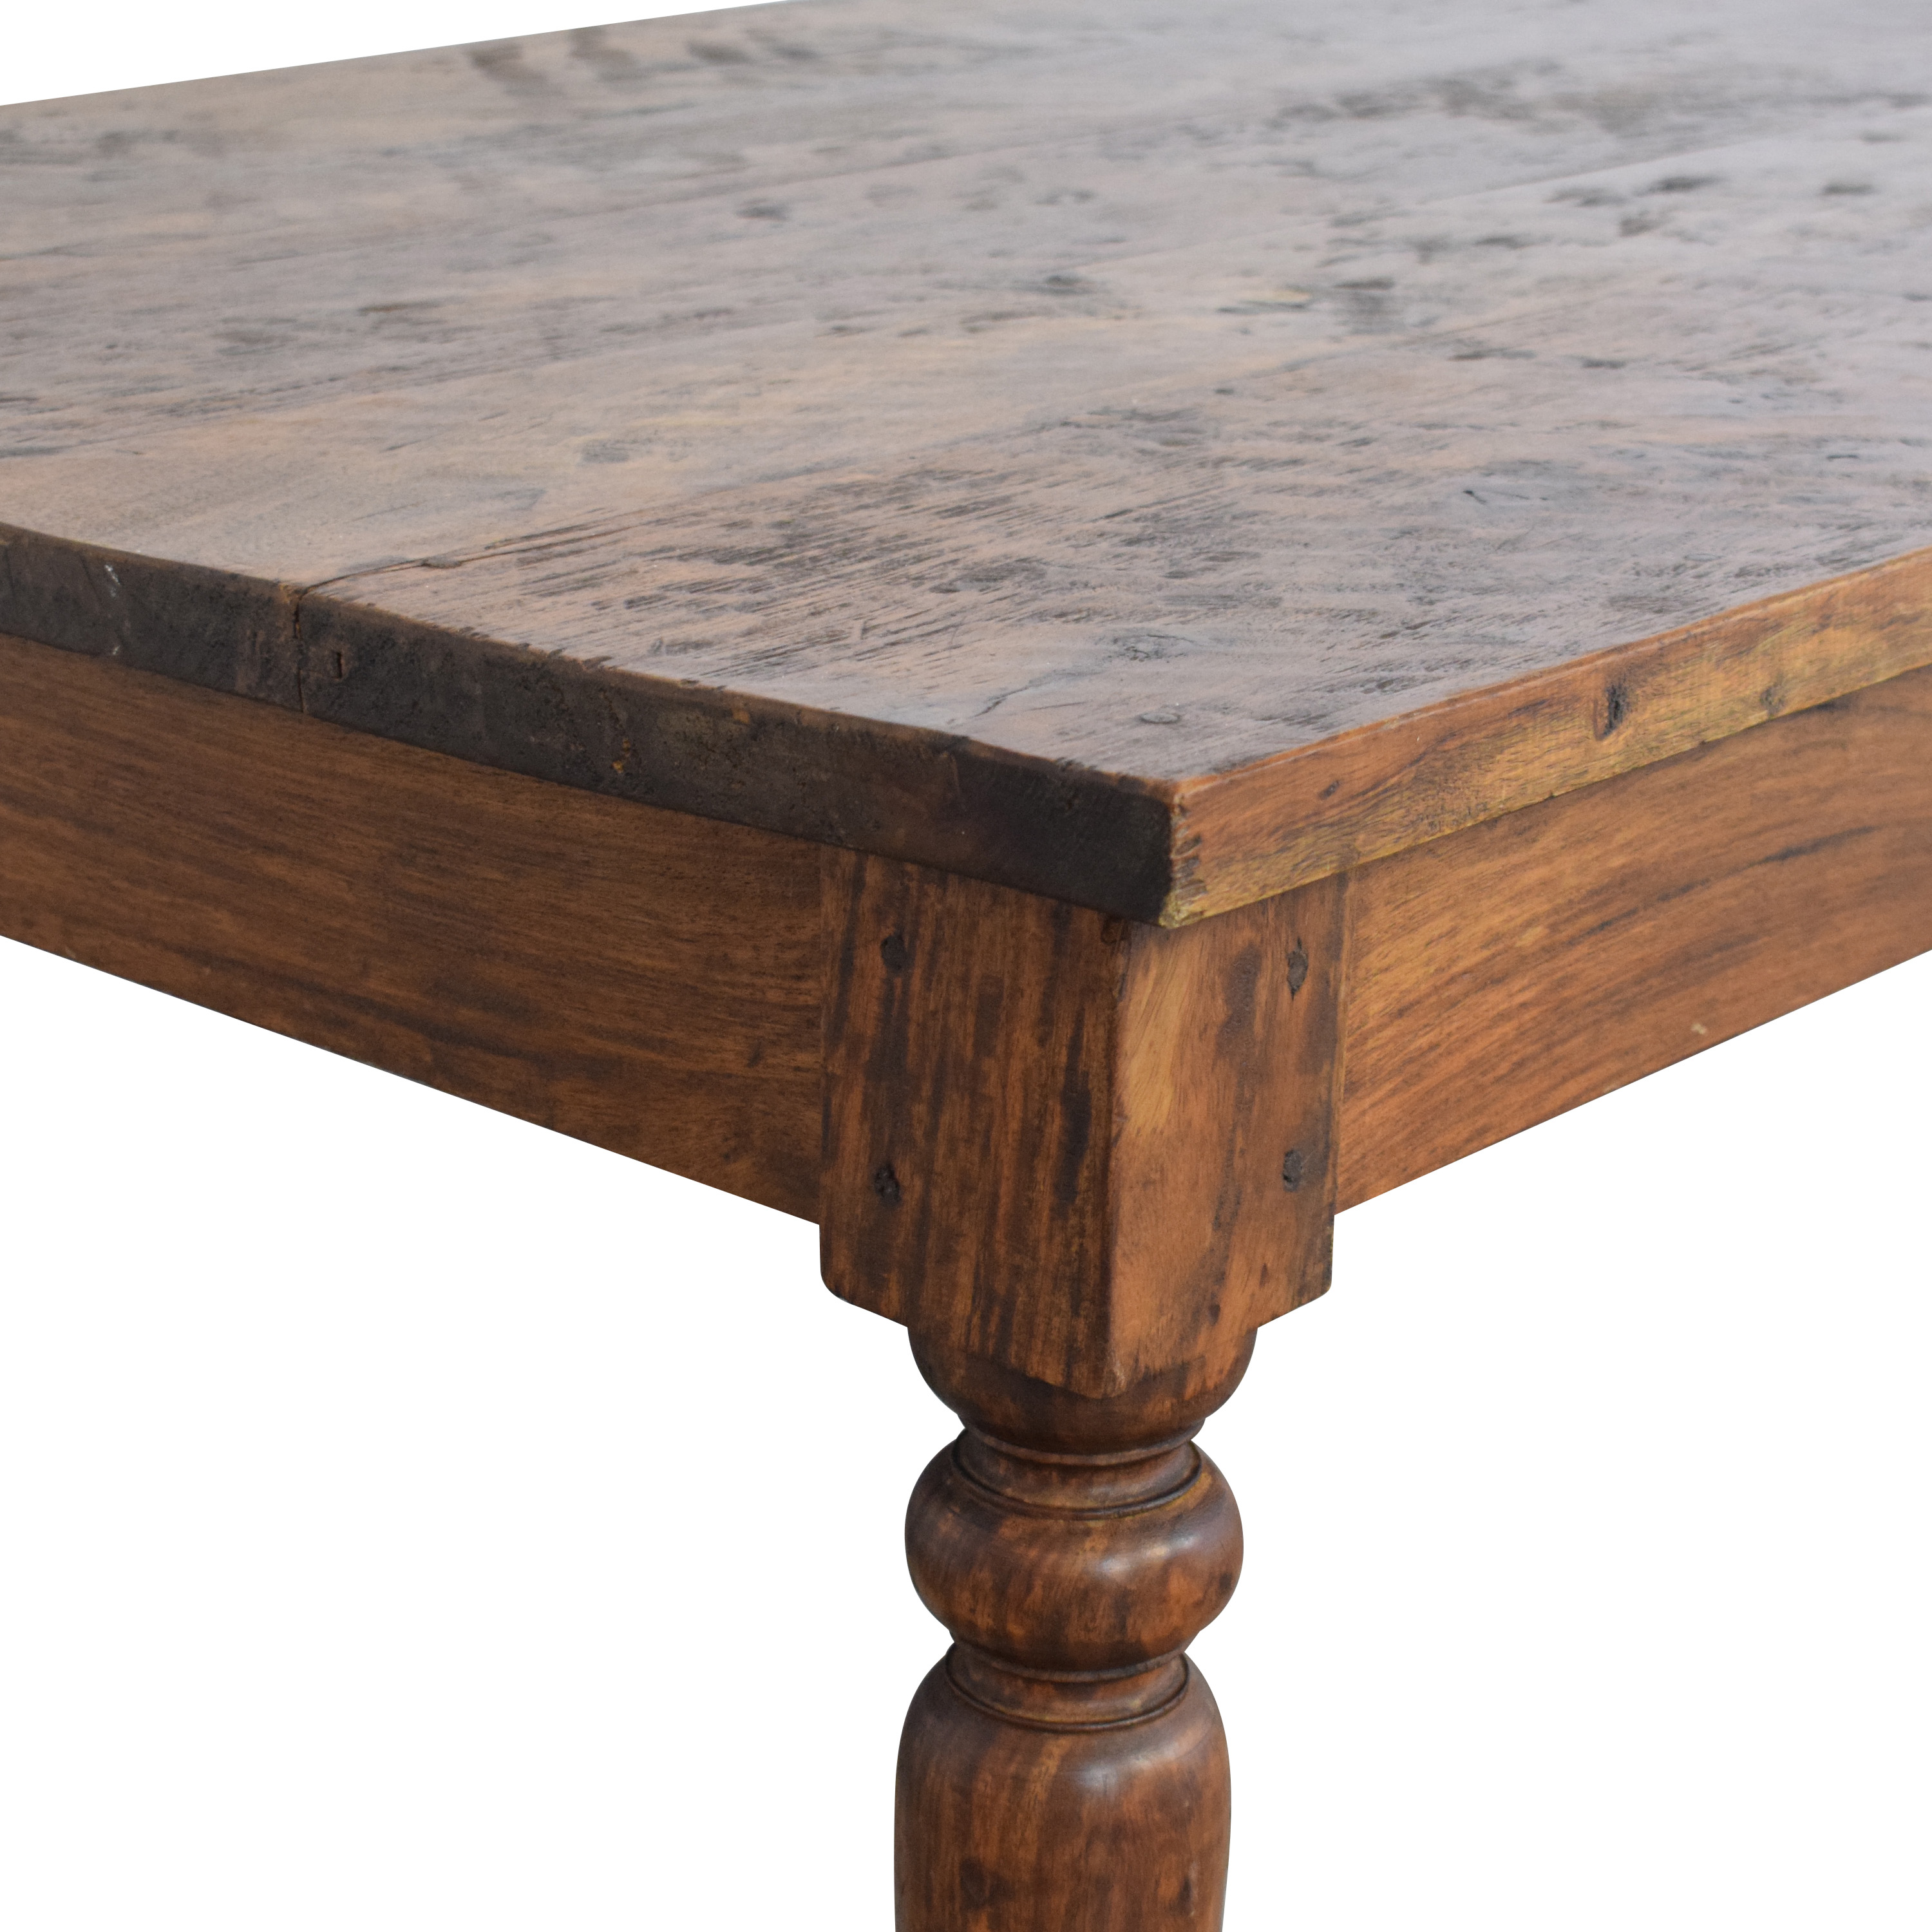 Crate & Barrel Crate & Barrel Weathered Coffee Table ct